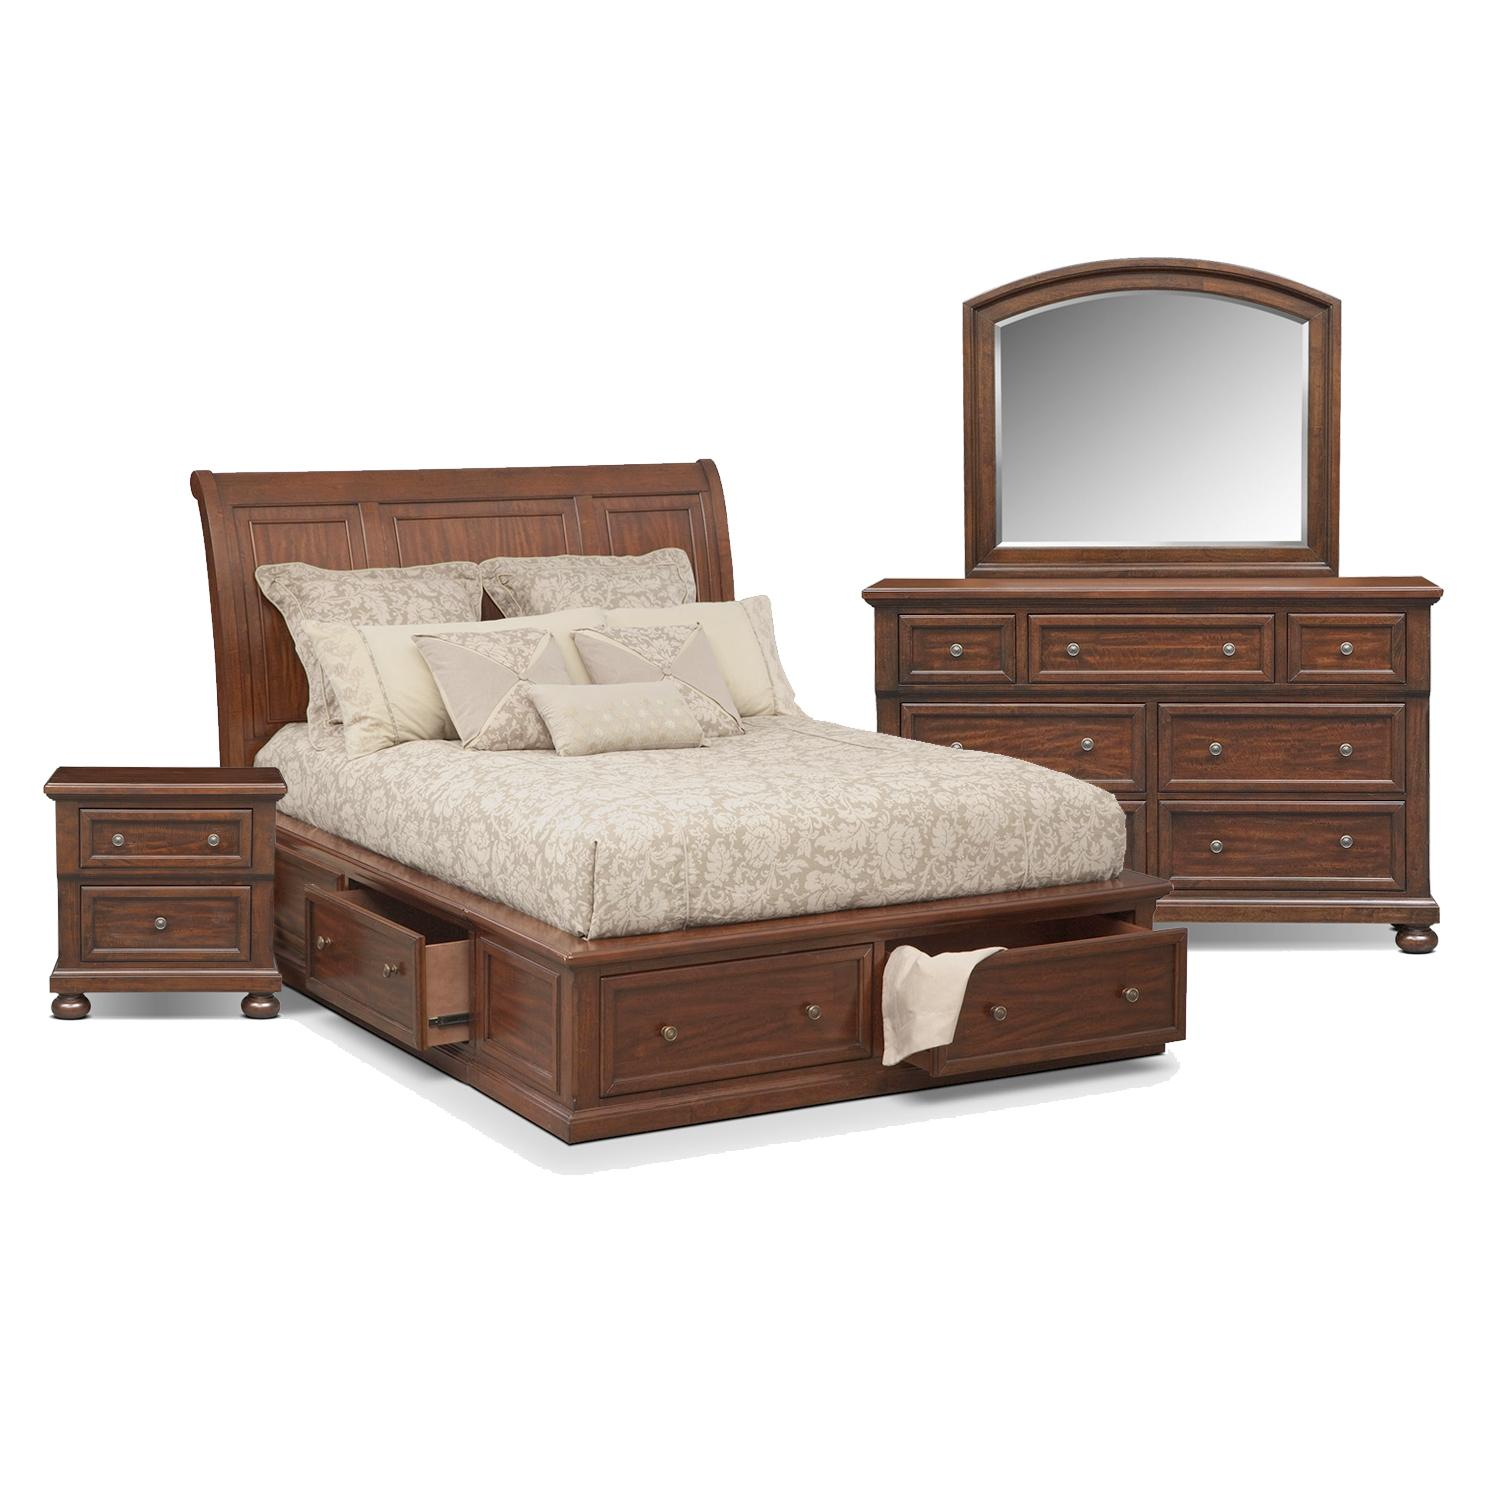 Bedroom Set Furniture ~ Bedroom furniture value city